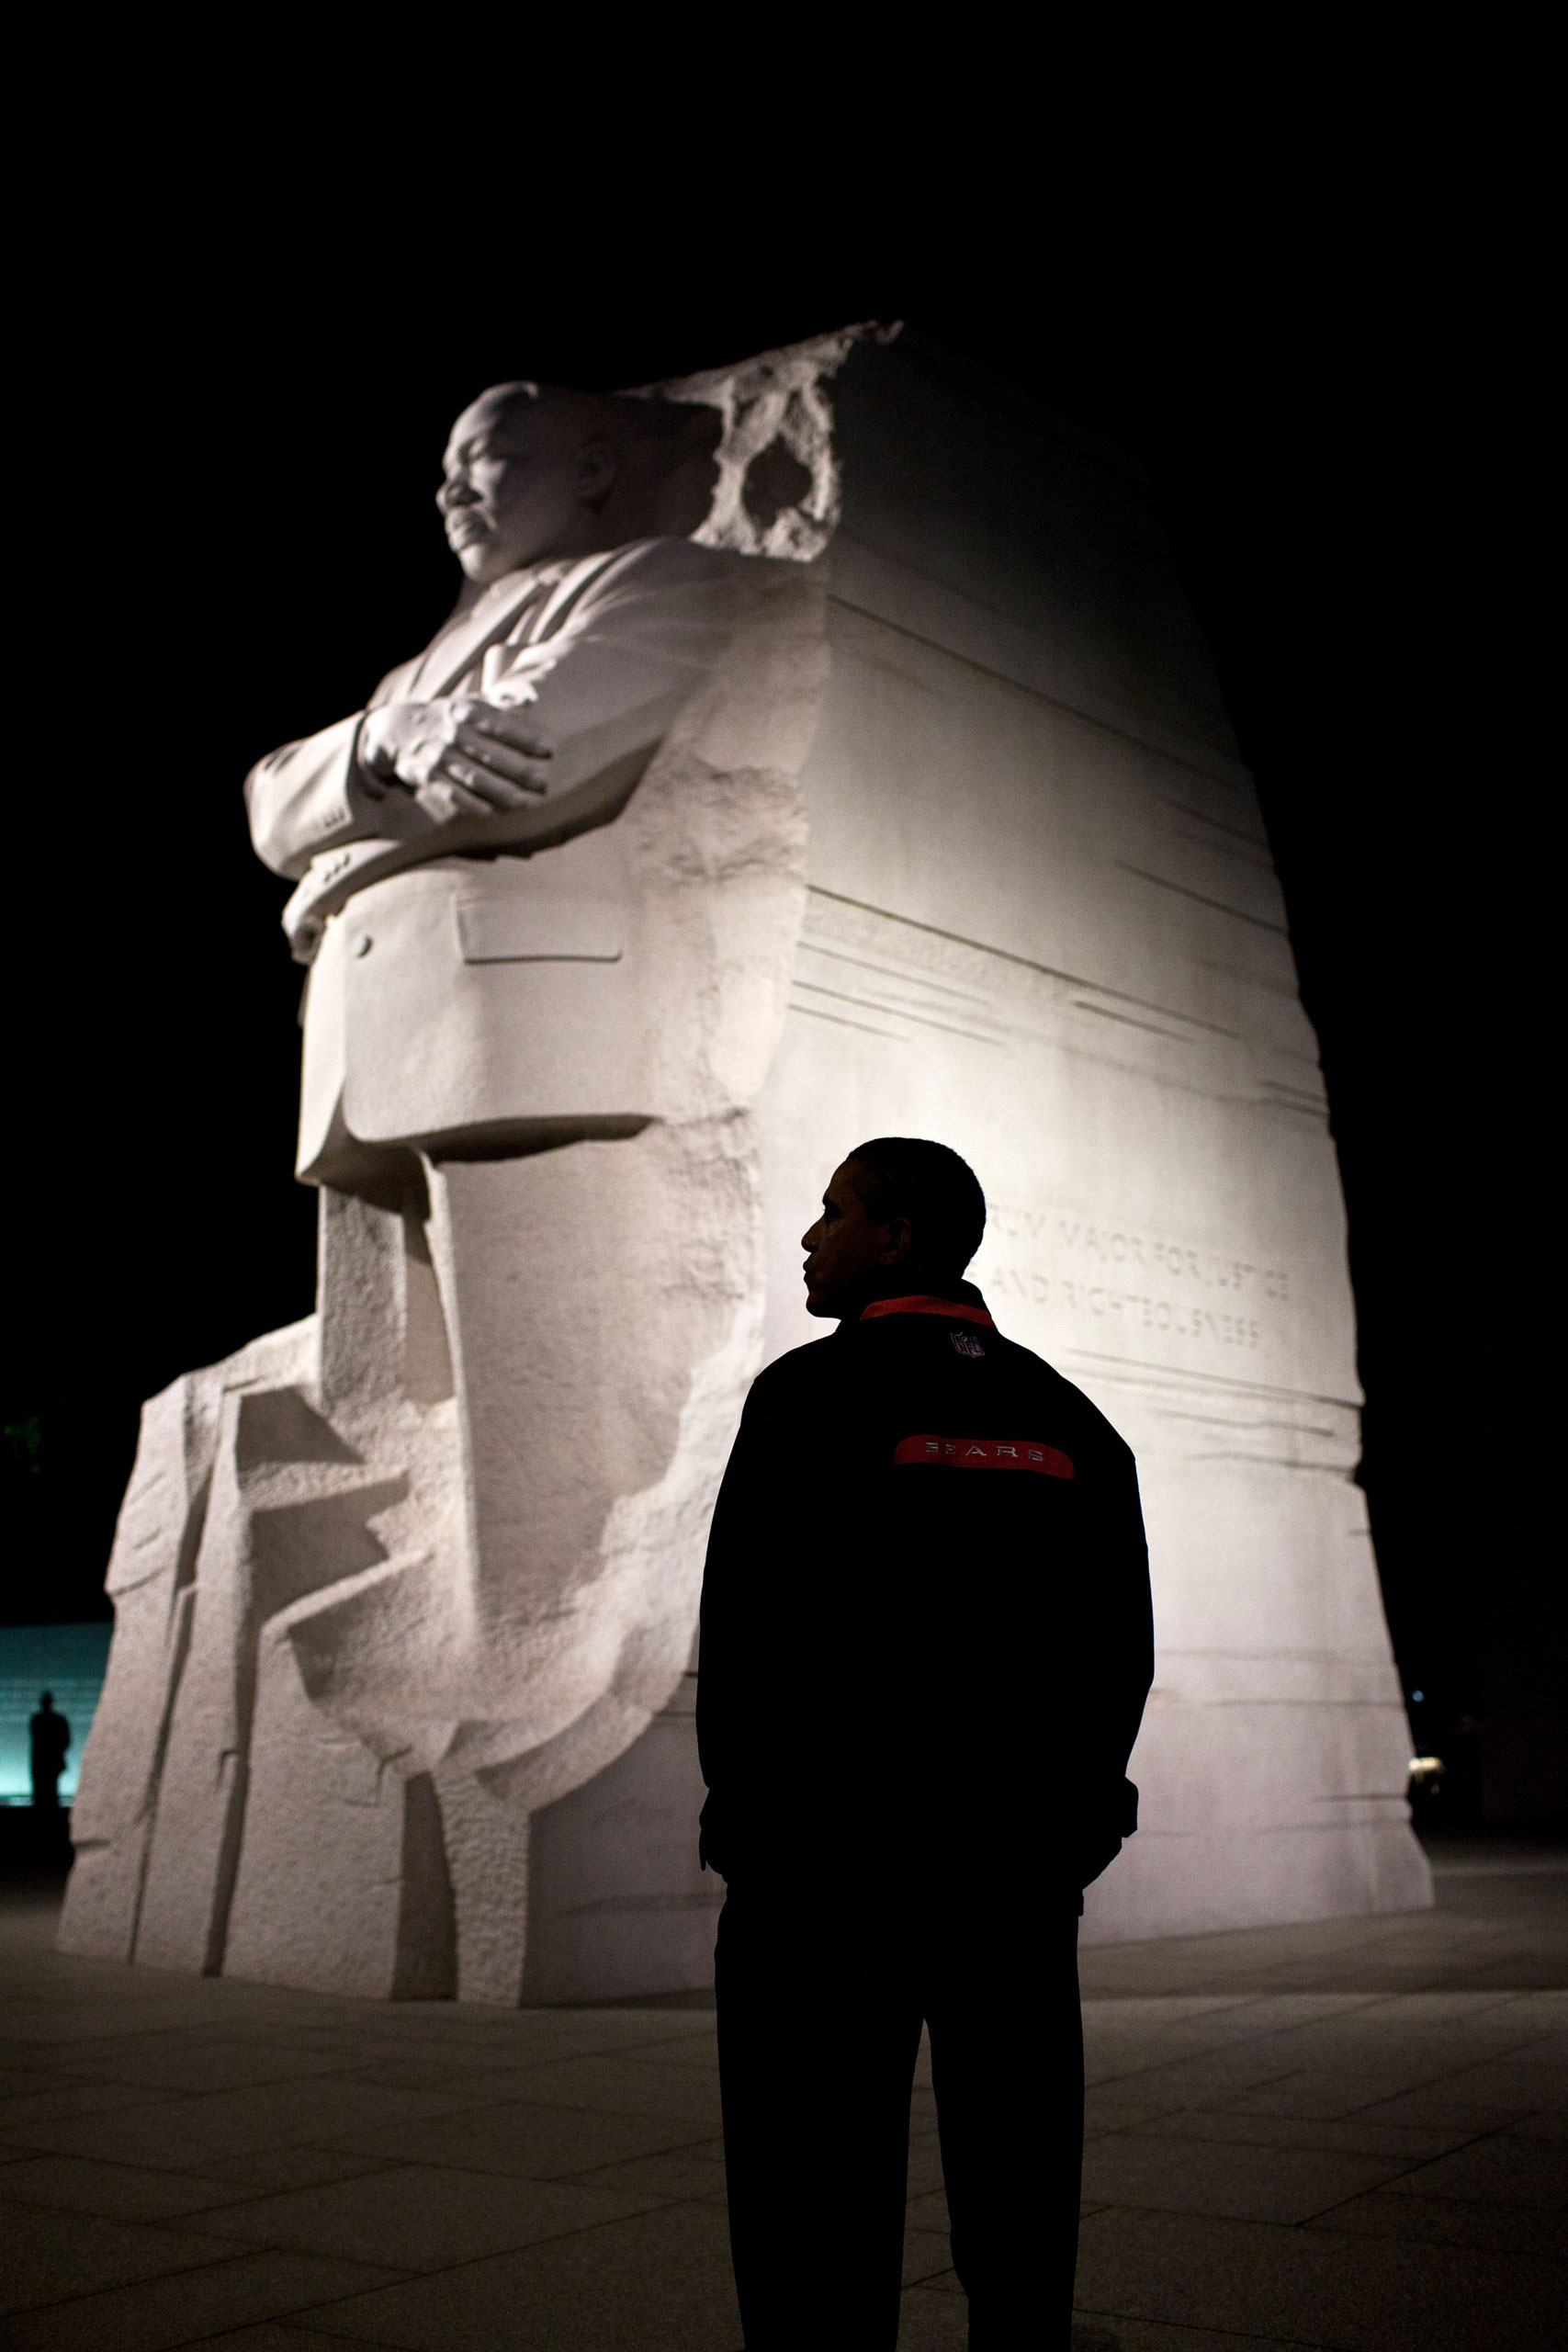 President Barack Obama tours the Martin Luther King Memorial in Washington, D.C., Oct. 14, 2011.